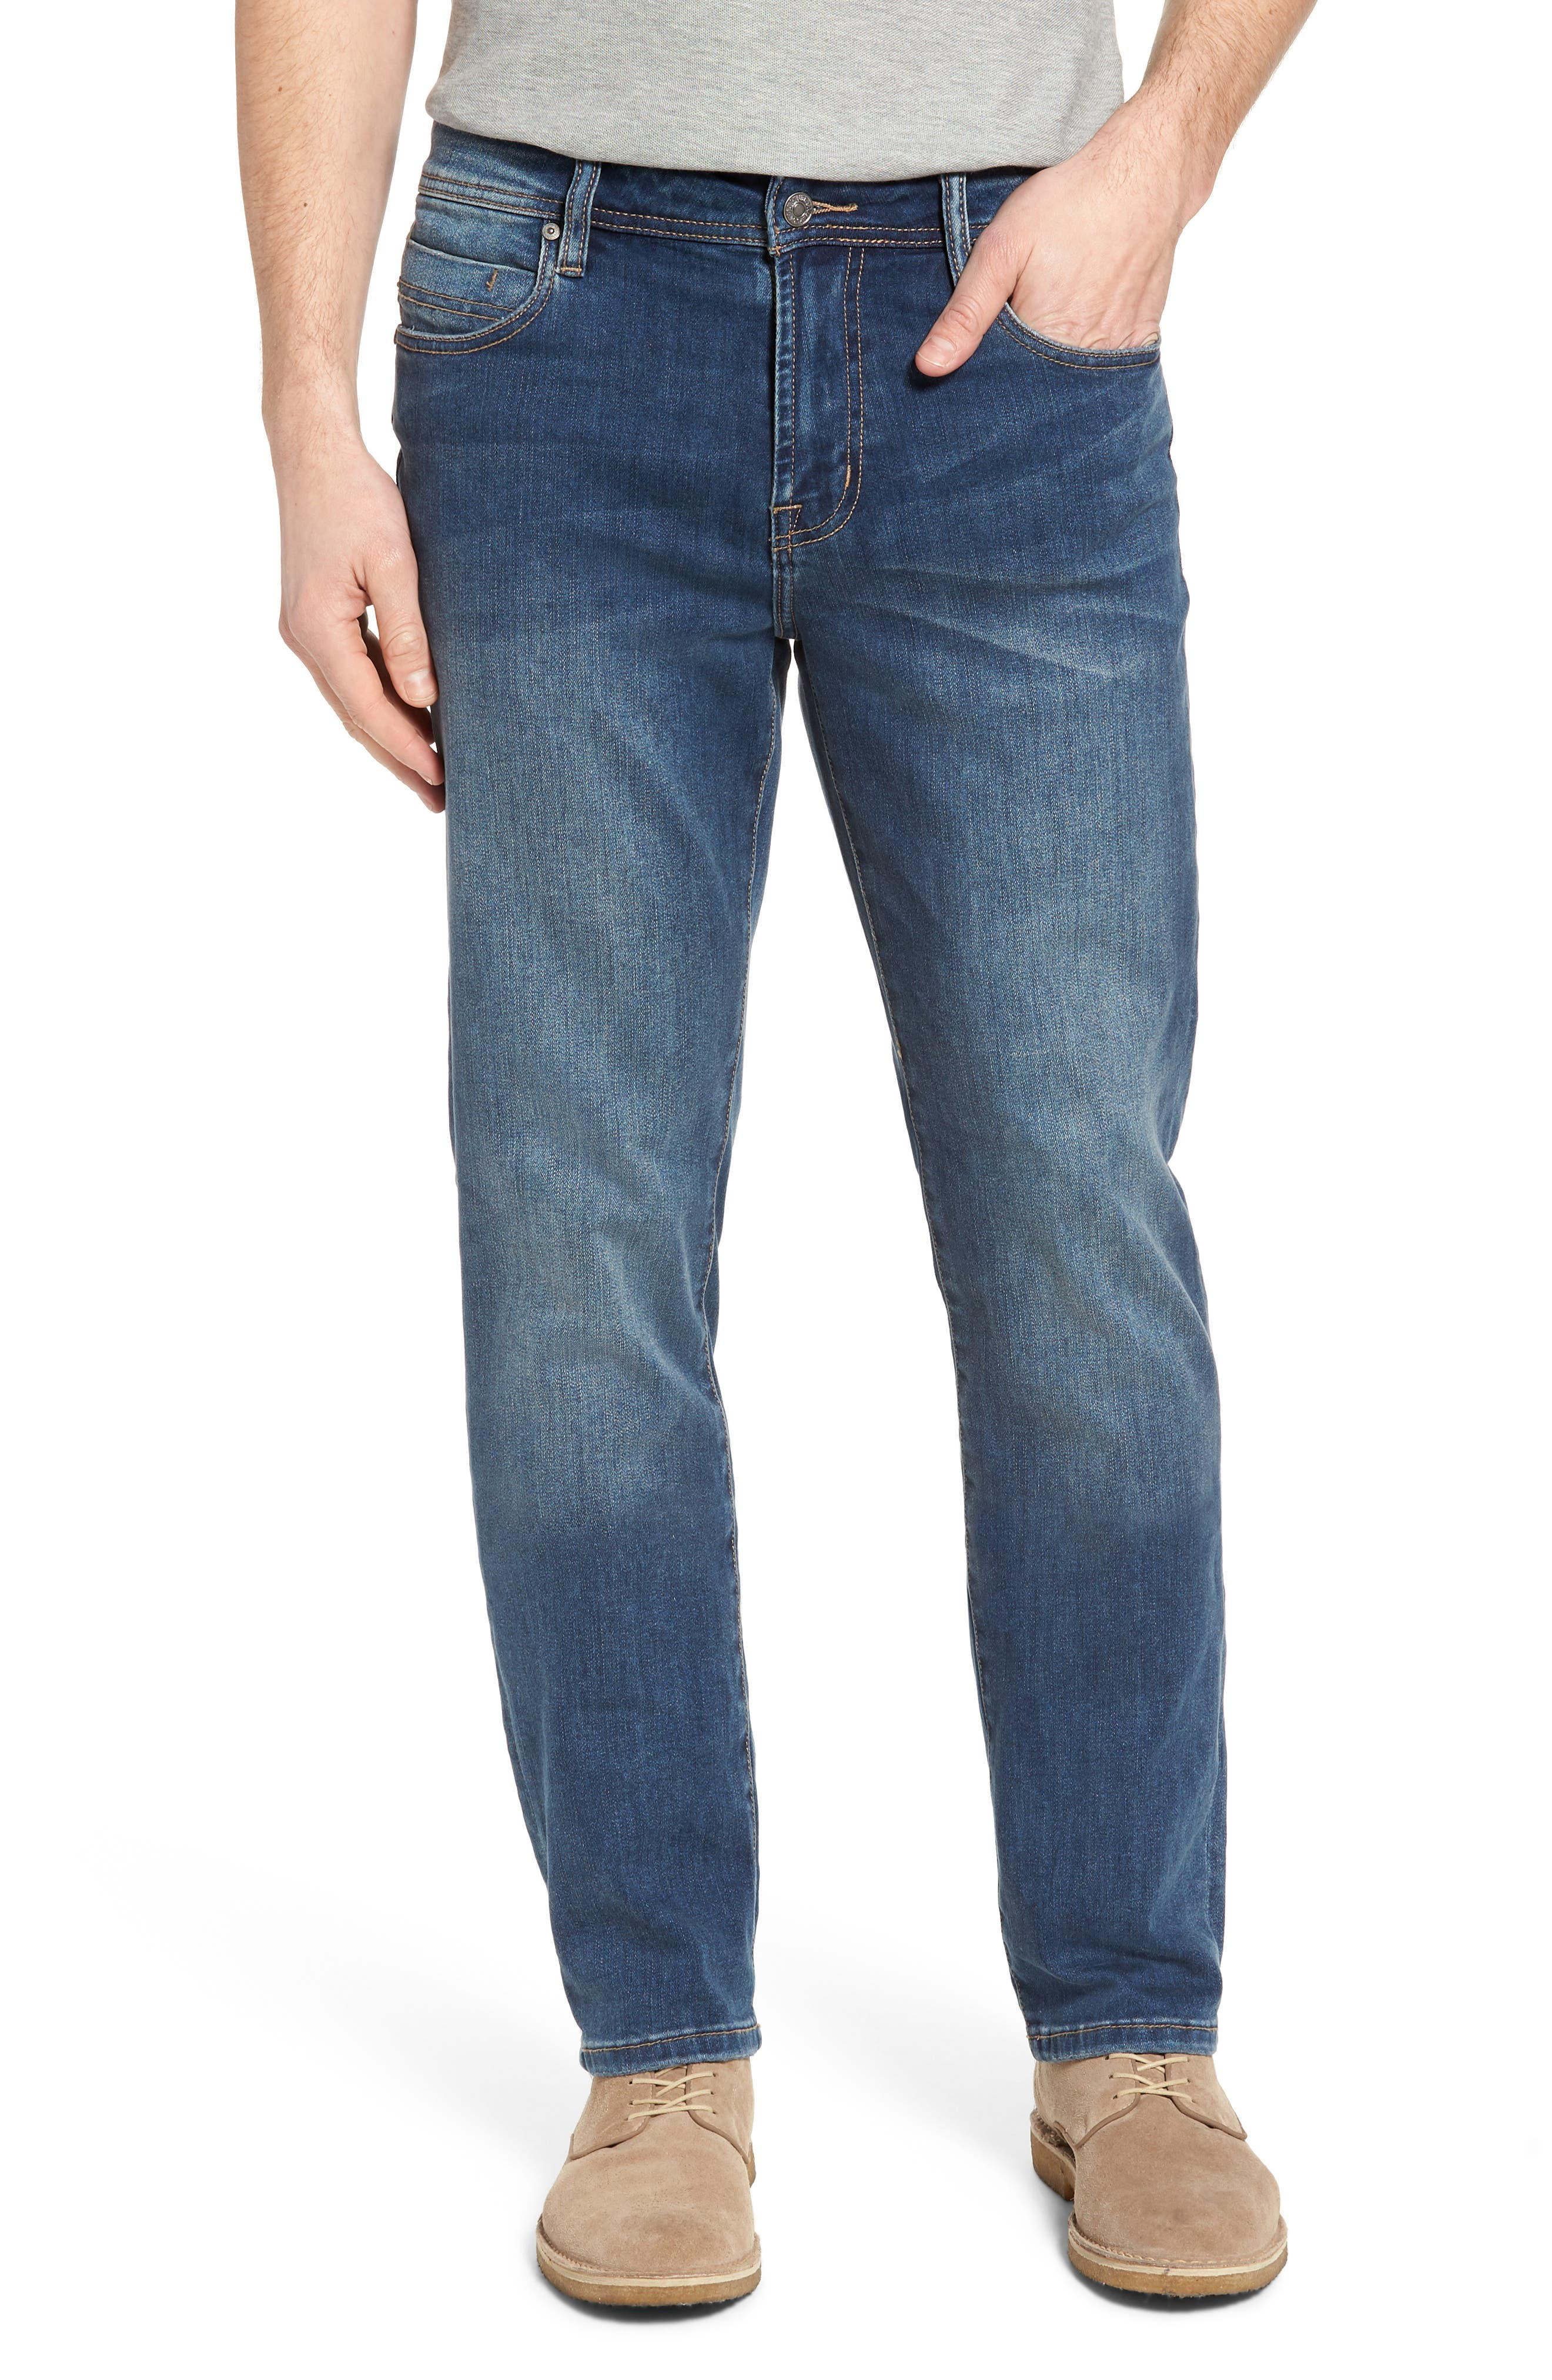 Liverpool Jeans Co. Regent Relaxed Fit Jeans (Chatsworth)